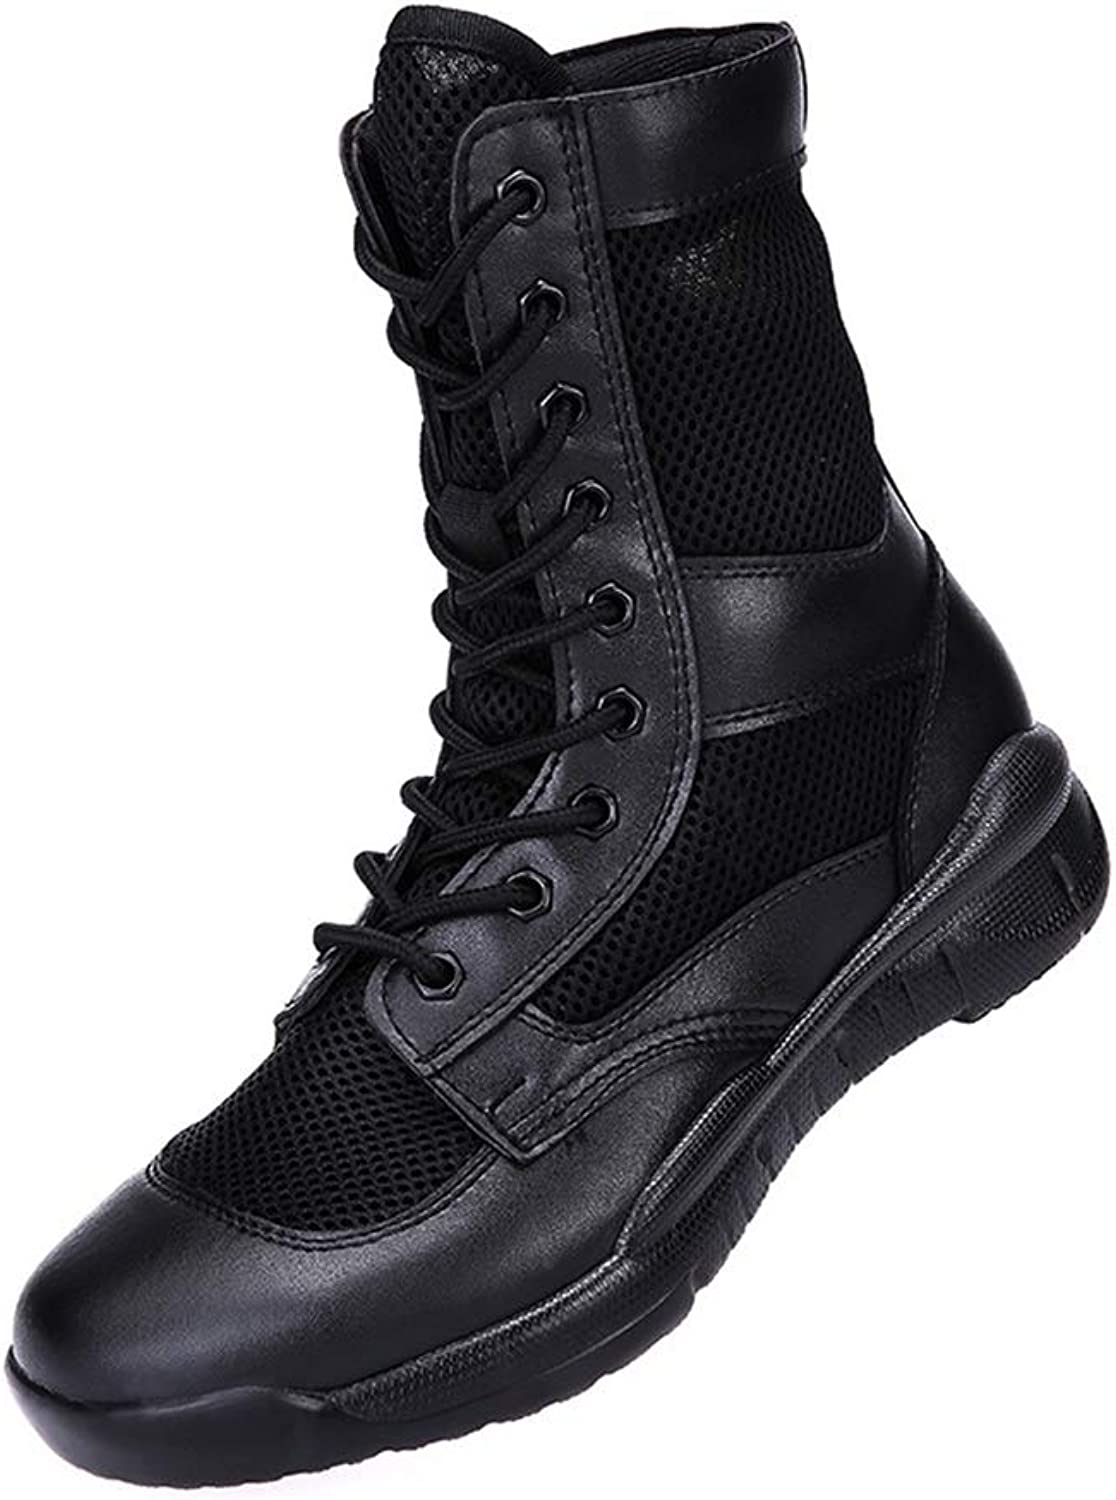 LIUYL men's military Combat Boot Police Security Army boots Summer breathable tactical Boot Work hiking Sports Outdoor shoes,Black-42